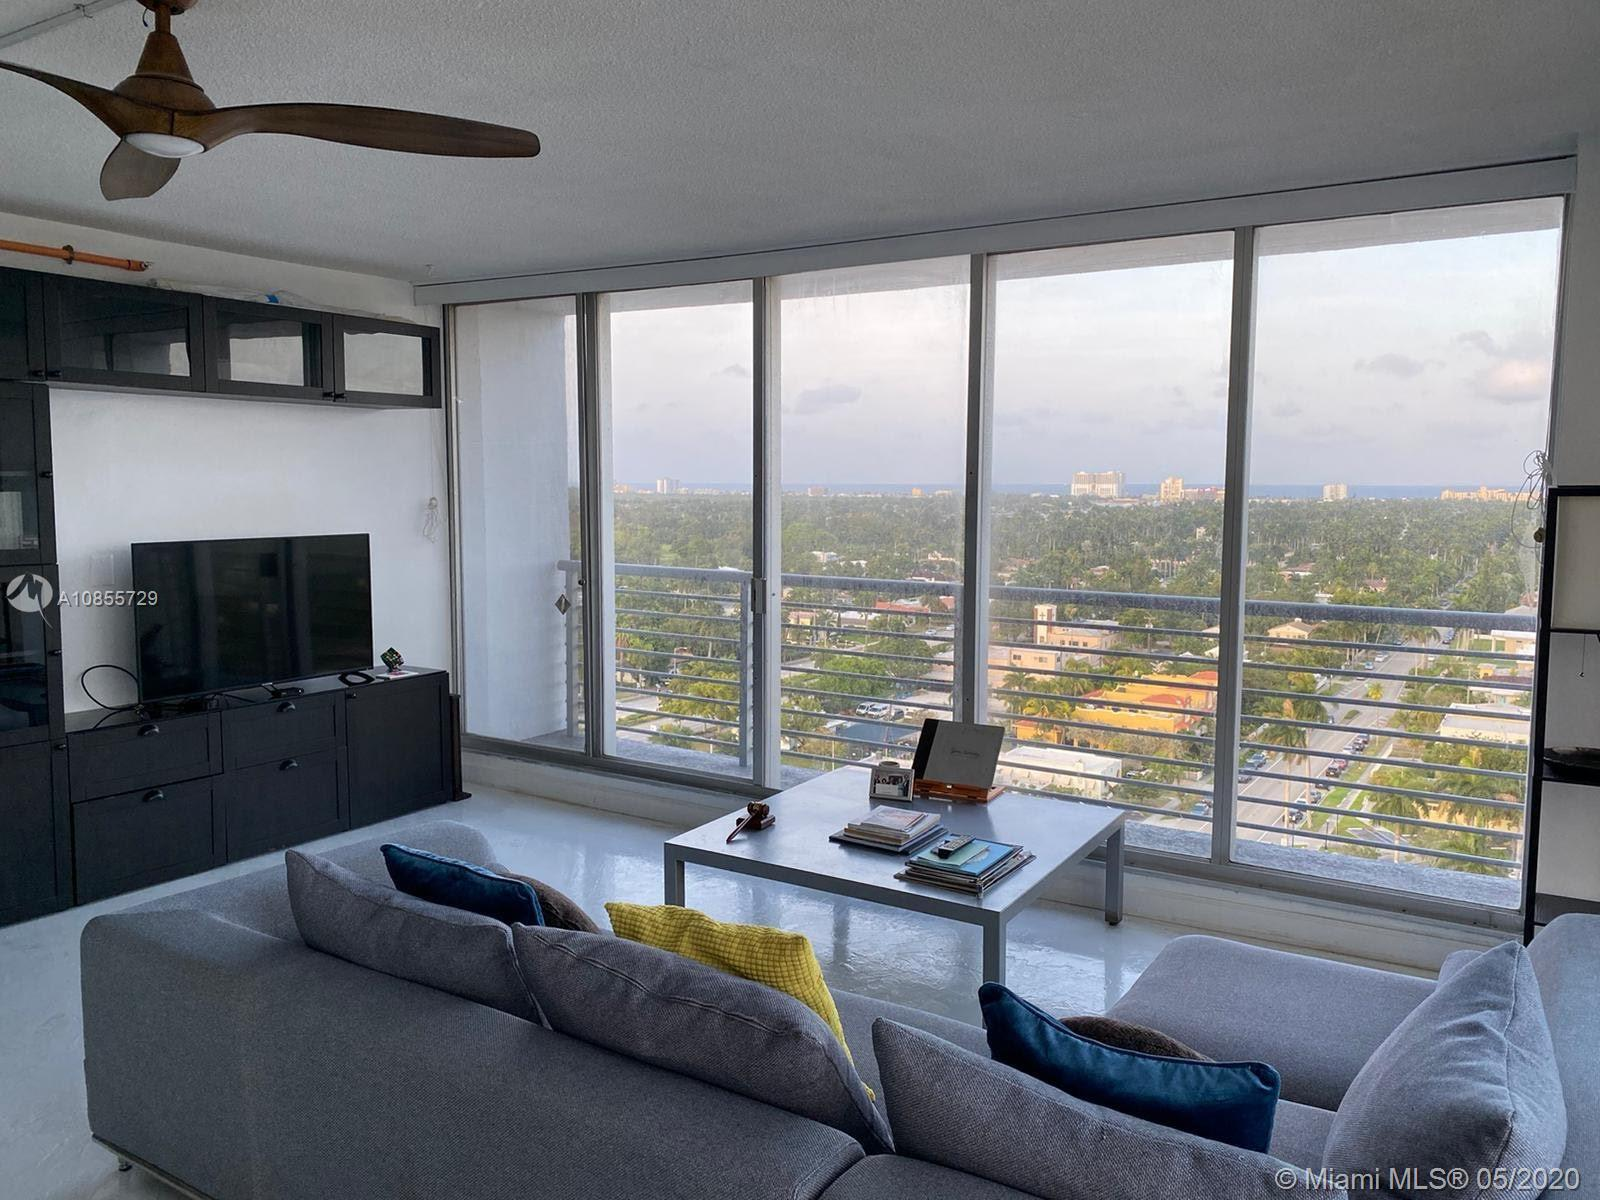 BACK ON THE MARKET!! SPECTACULAR VIEWS FROM THIS BEAUTIFUL AND SPACIOUS 1 BDR / 2 BATH APARTMENT LOCATED ON YOUNG CIRCLE IN DOWNTOWN HOLLYWOOD. KITCHEN HAS NEWER APPLIANCES. BEAUTIFUL RESIN-CEMENT FLOORS. UNOBSTRUCTED VIEWS TO THE OCEAN AND SOUTH. VERY CLOSE TO BEACHES, RESTAURANTS, ATS PARK, AND TRANSPORTATION.